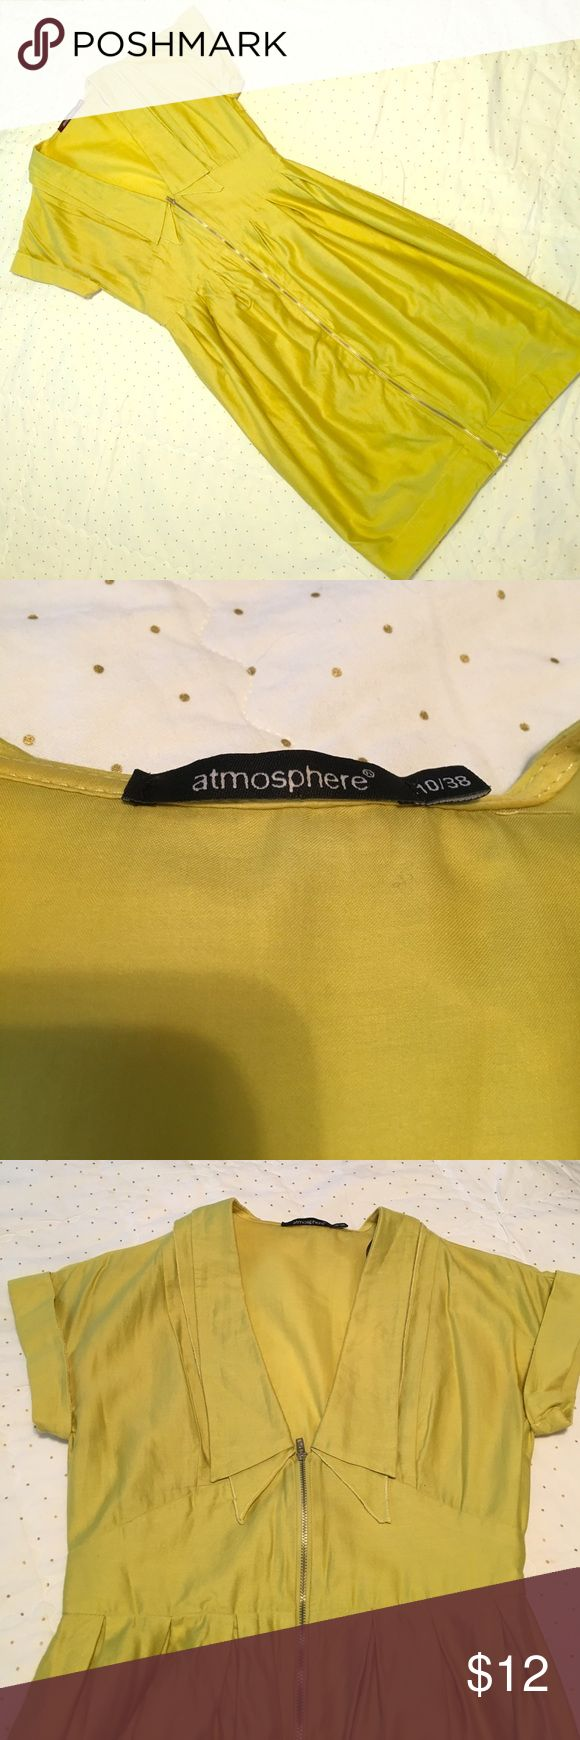 "Atmosphere Primark Dress Purchased in London! 🇬🇧 Beautiful chartreuse citron yellow/green Zip up dress. Size is U.K. 10 which is 8 US. 100% Cotton. Gently worn. Hard for me to part with! 🇬🇧🇬🇧🇬🇧🇬🇧 Length is 36 1/2"". Waist is 14"". Atmosphere by Primark Dresses Midi"